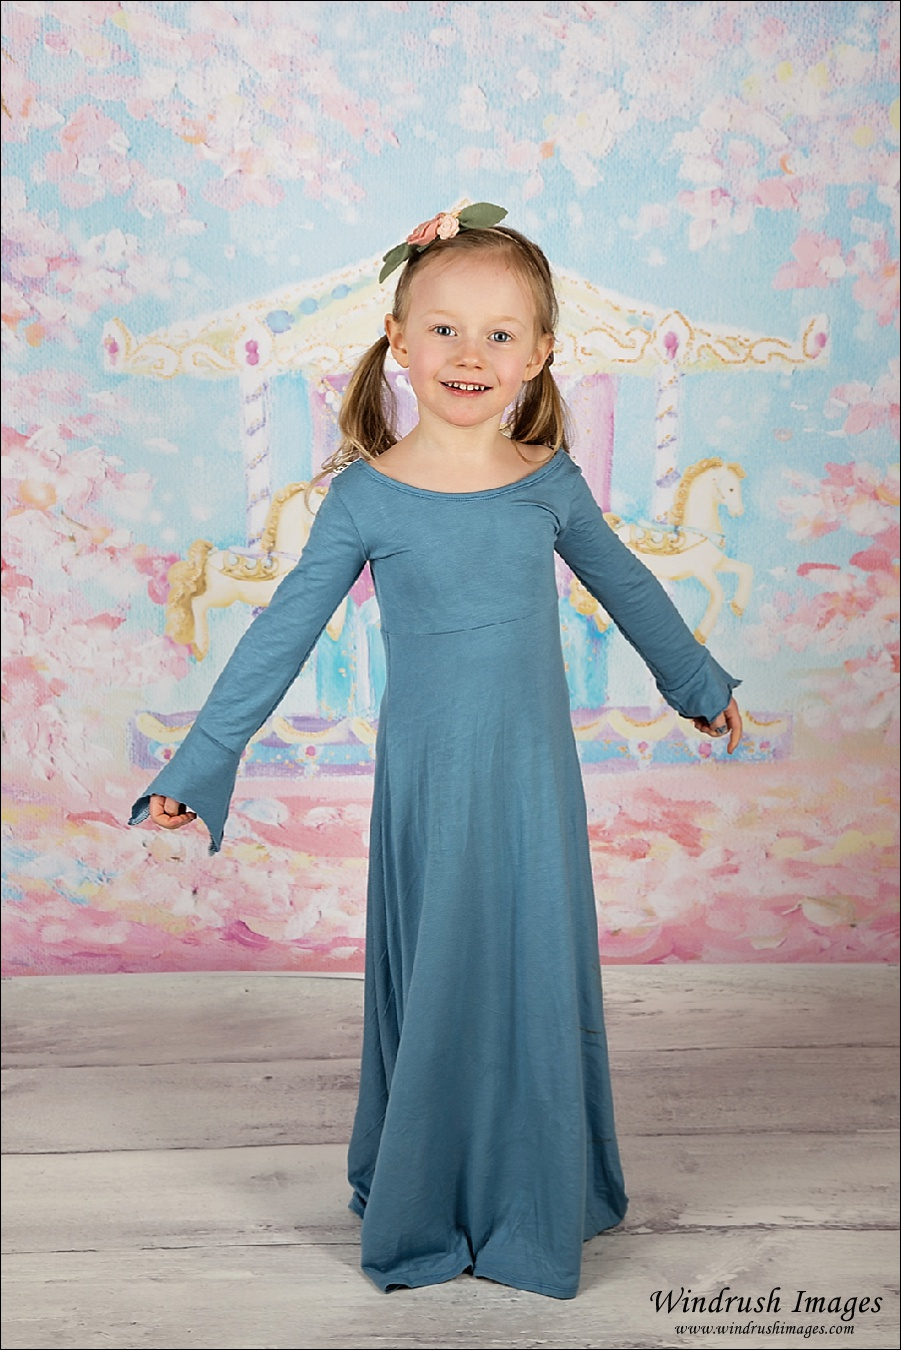 Little girl twirling in blue dress with carousel background for spring mini pictures in Calgary studio